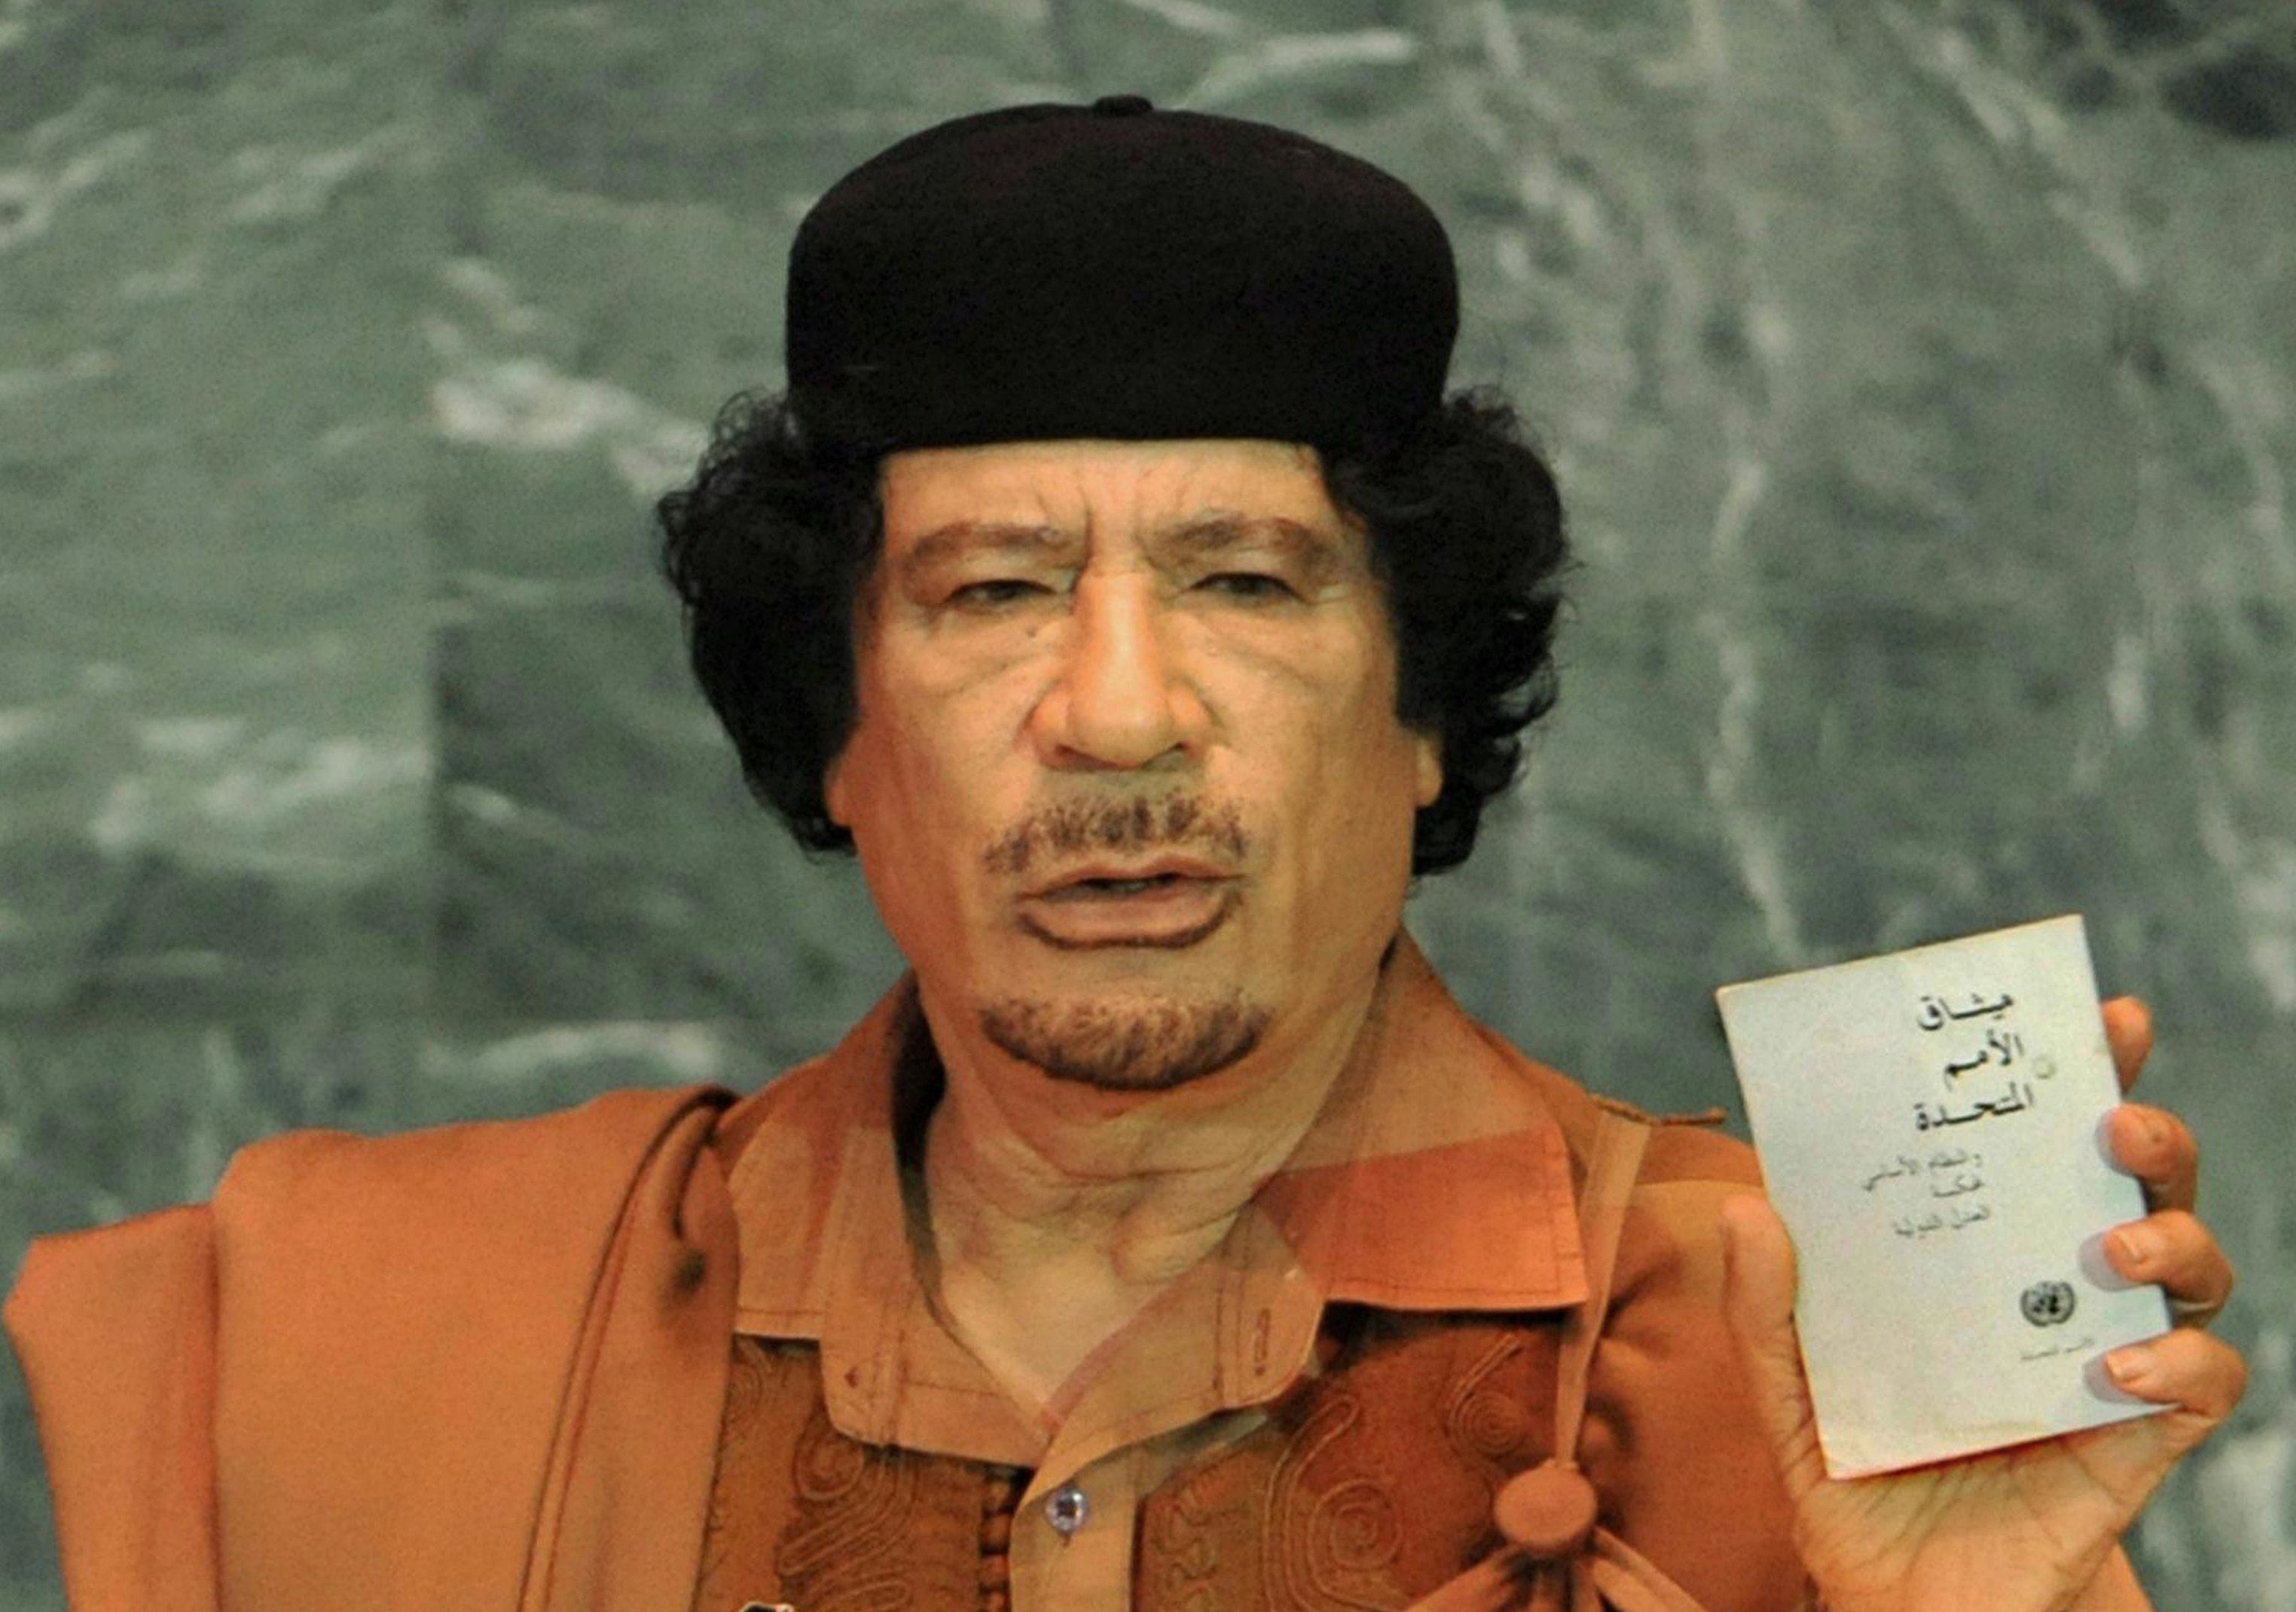 +++ FLASH +++ LIBIA: AL JAZIRA, GHEDDAFI UCCISO +++ FLASH +++